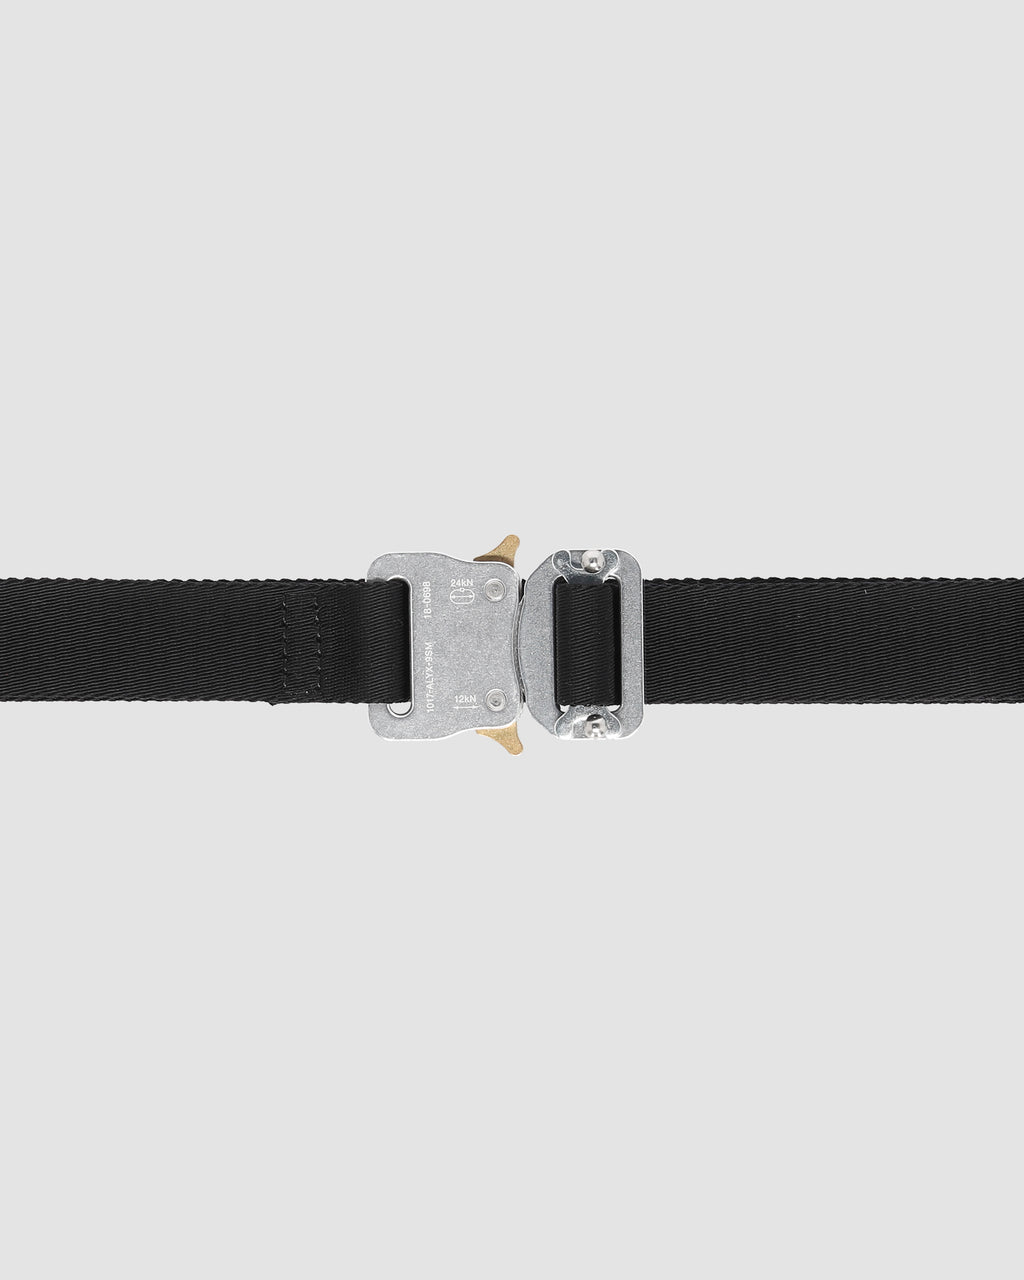 1017 ALYX 9SM | MEDIUM ROLLERCOASTER BELT | Belt | Accessories, Belt, Black, CO, F19, Man, Silver, Woman